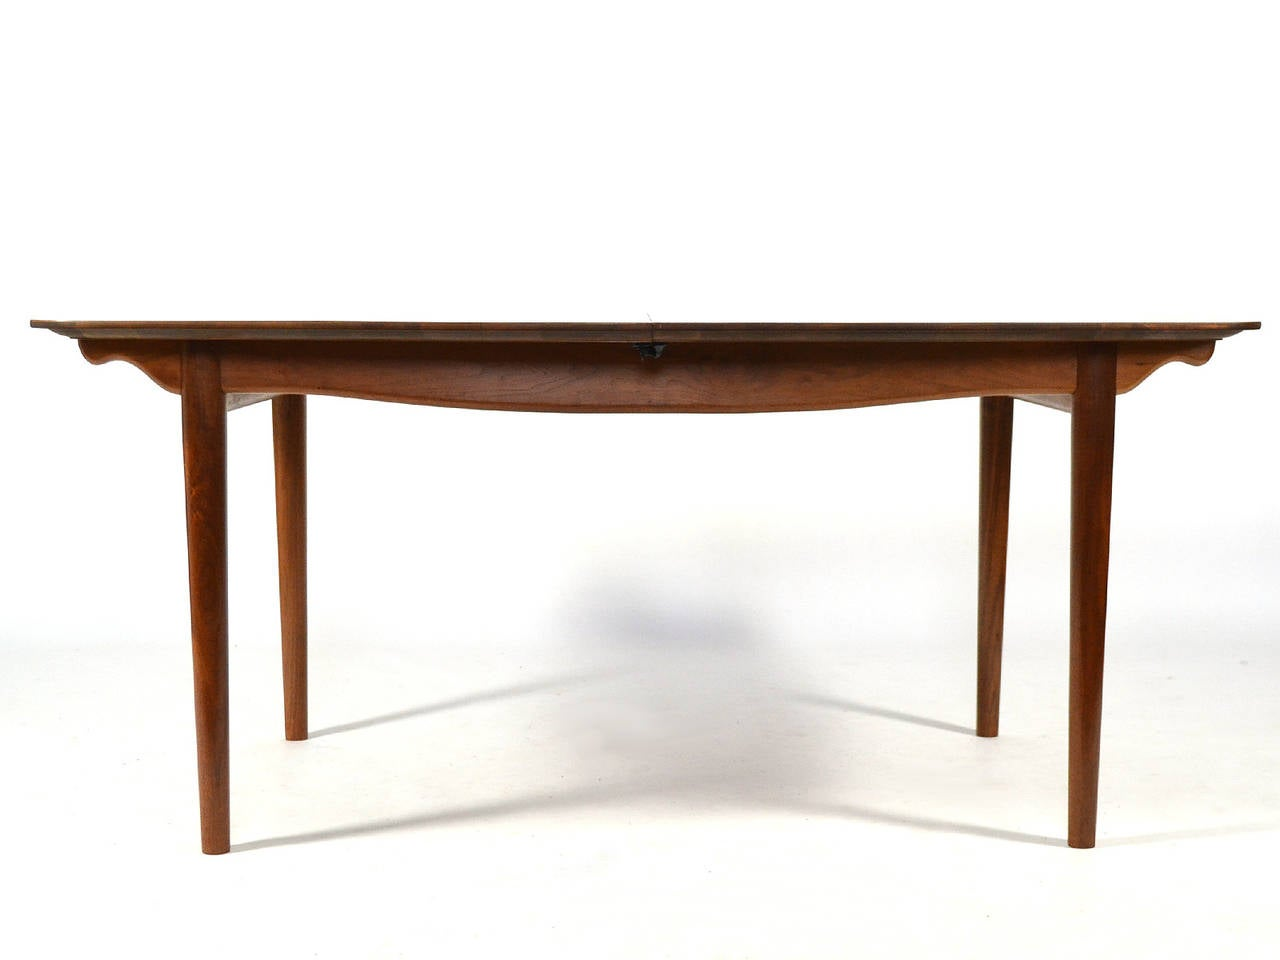 Finn Juhl Dining Table and Chairs In Excellent Condition For Sale In Highland, IN